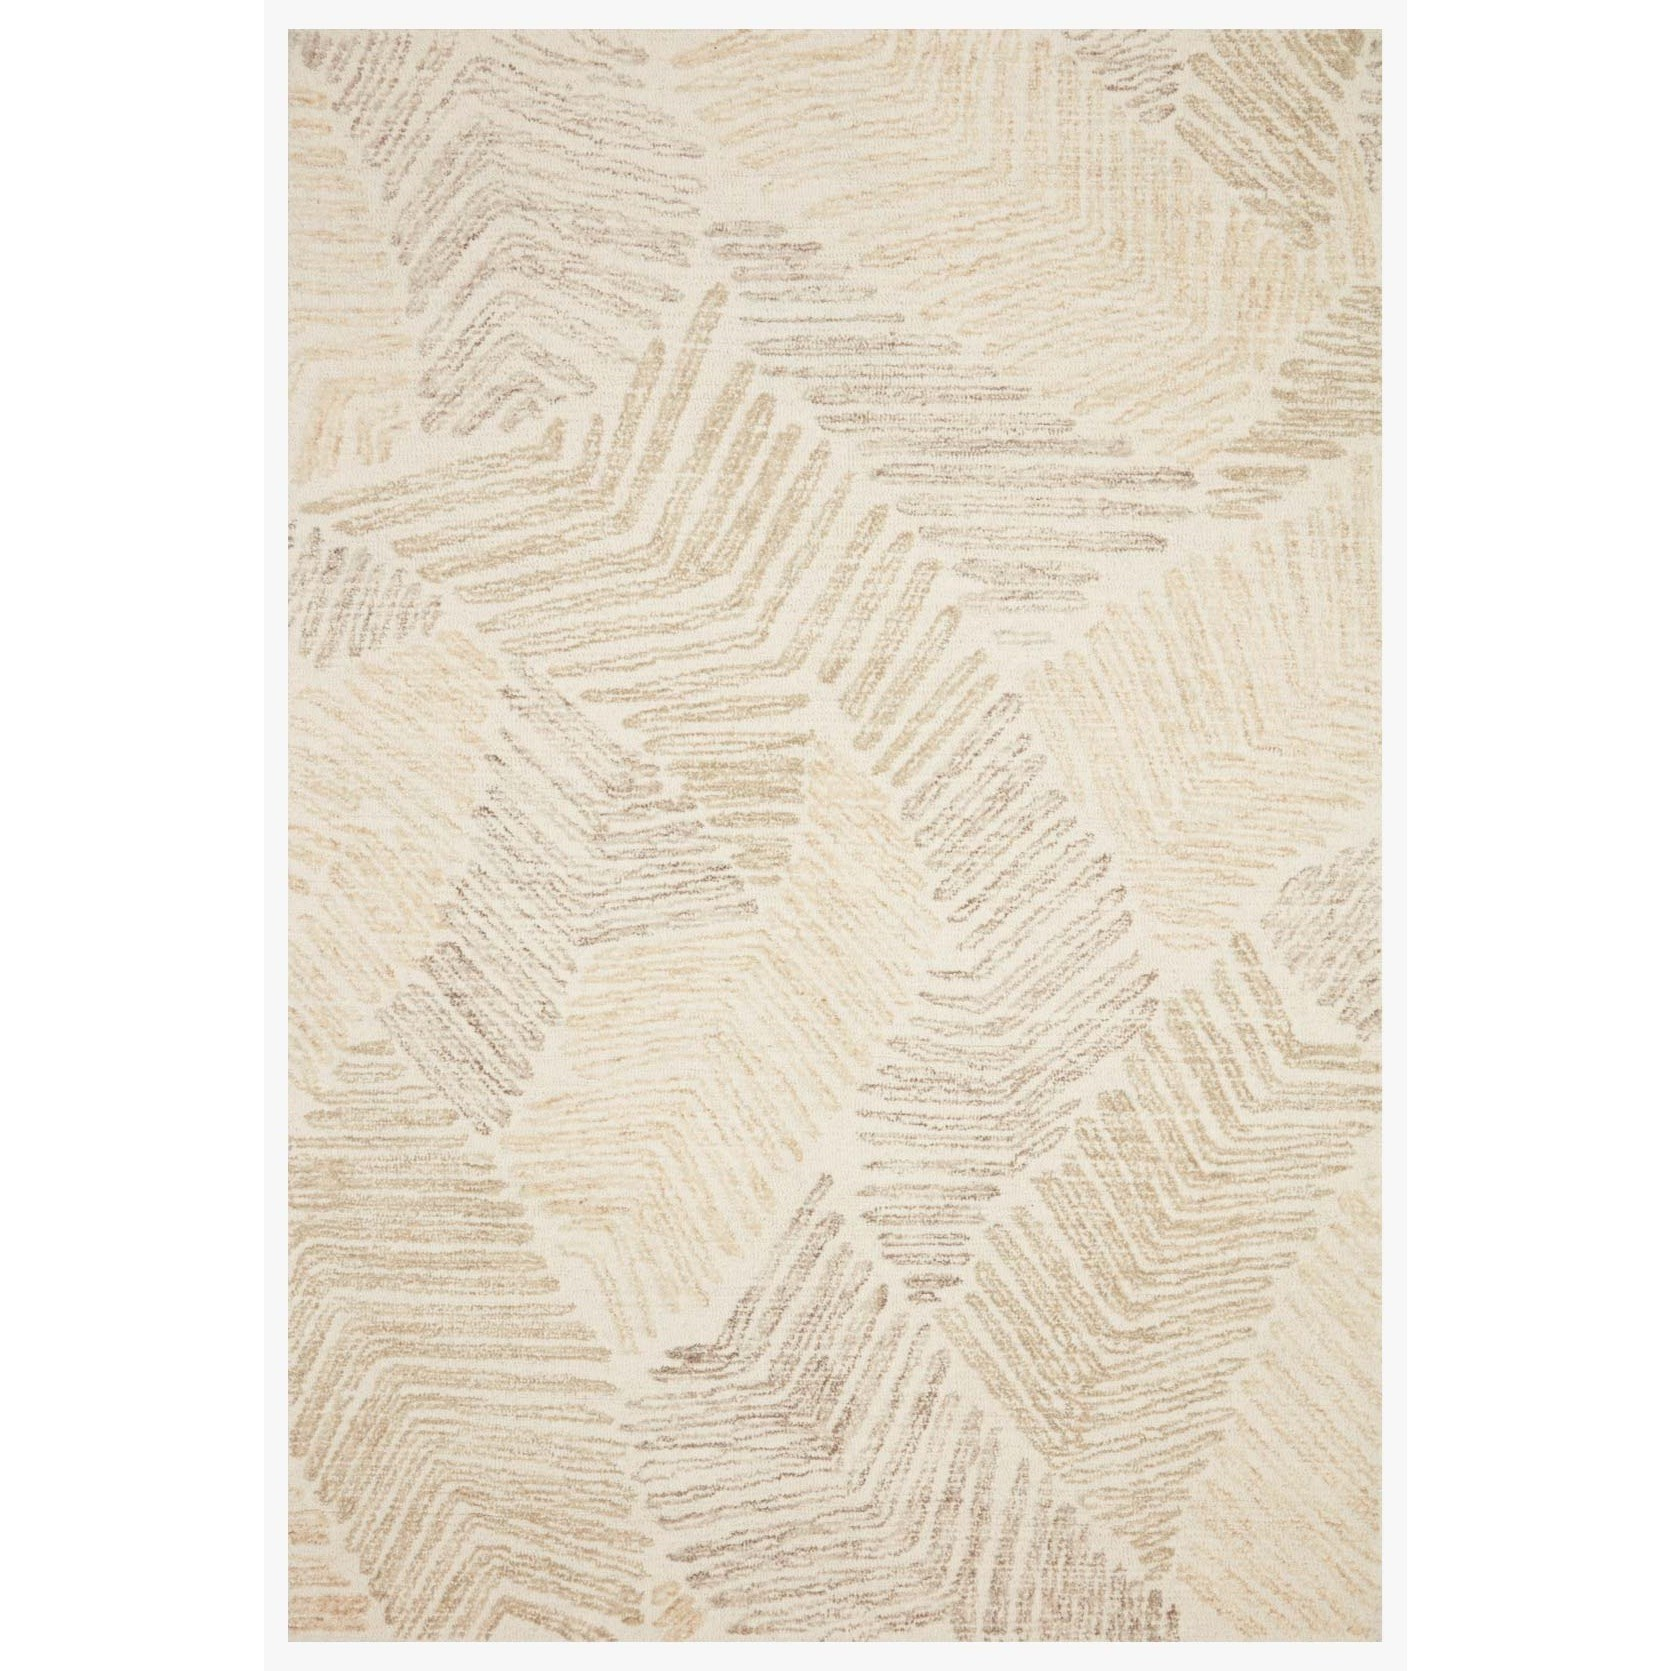 """Milo 11'6"""" x 15' Olive / Natural Rug by Loloi Rugs at Virginia Furniture Market"""